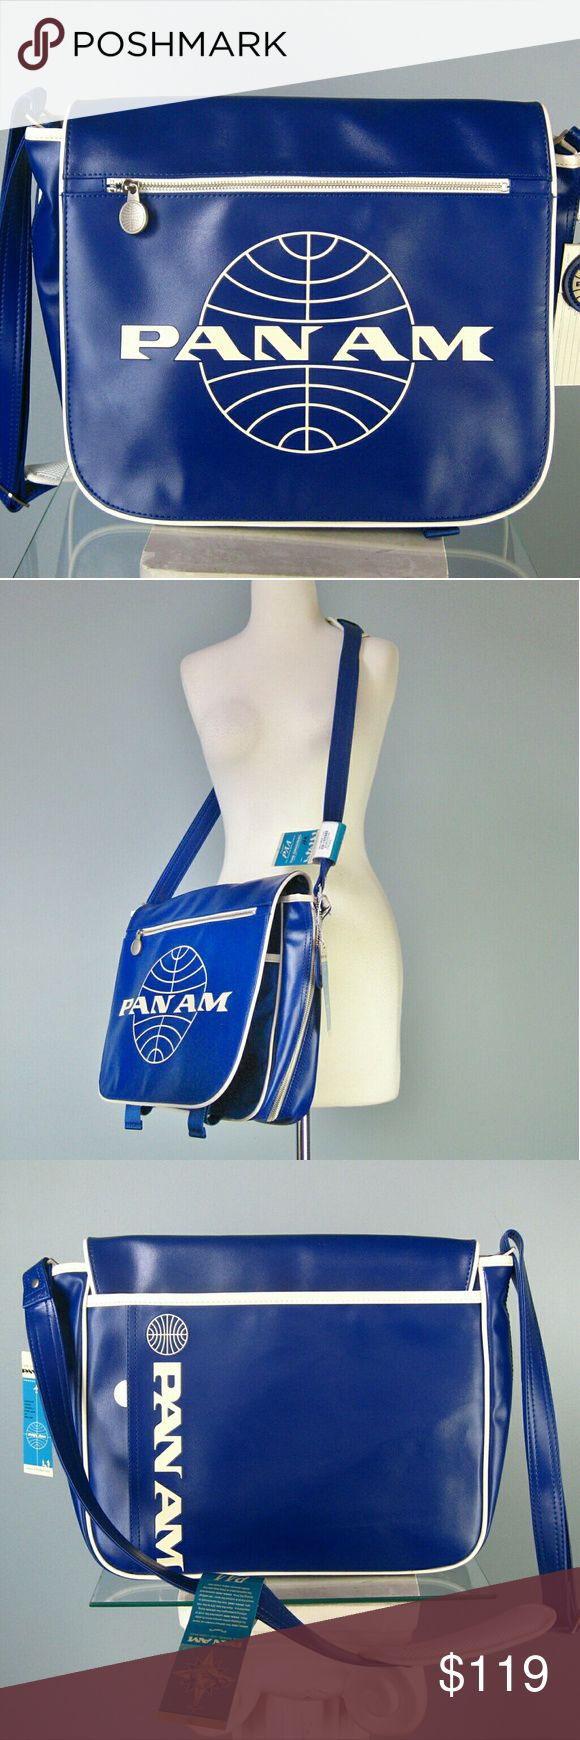 """Reproduction Pan Am Messenger Bag Super cool vinyl messenger with lots of pockets, adjustable padded strap, 14.5"""" wide 12 7/8"""" high, 6 3/8"""" deep. Strap 18"""" - 23 1/2"""" Bags Travel Bags"""